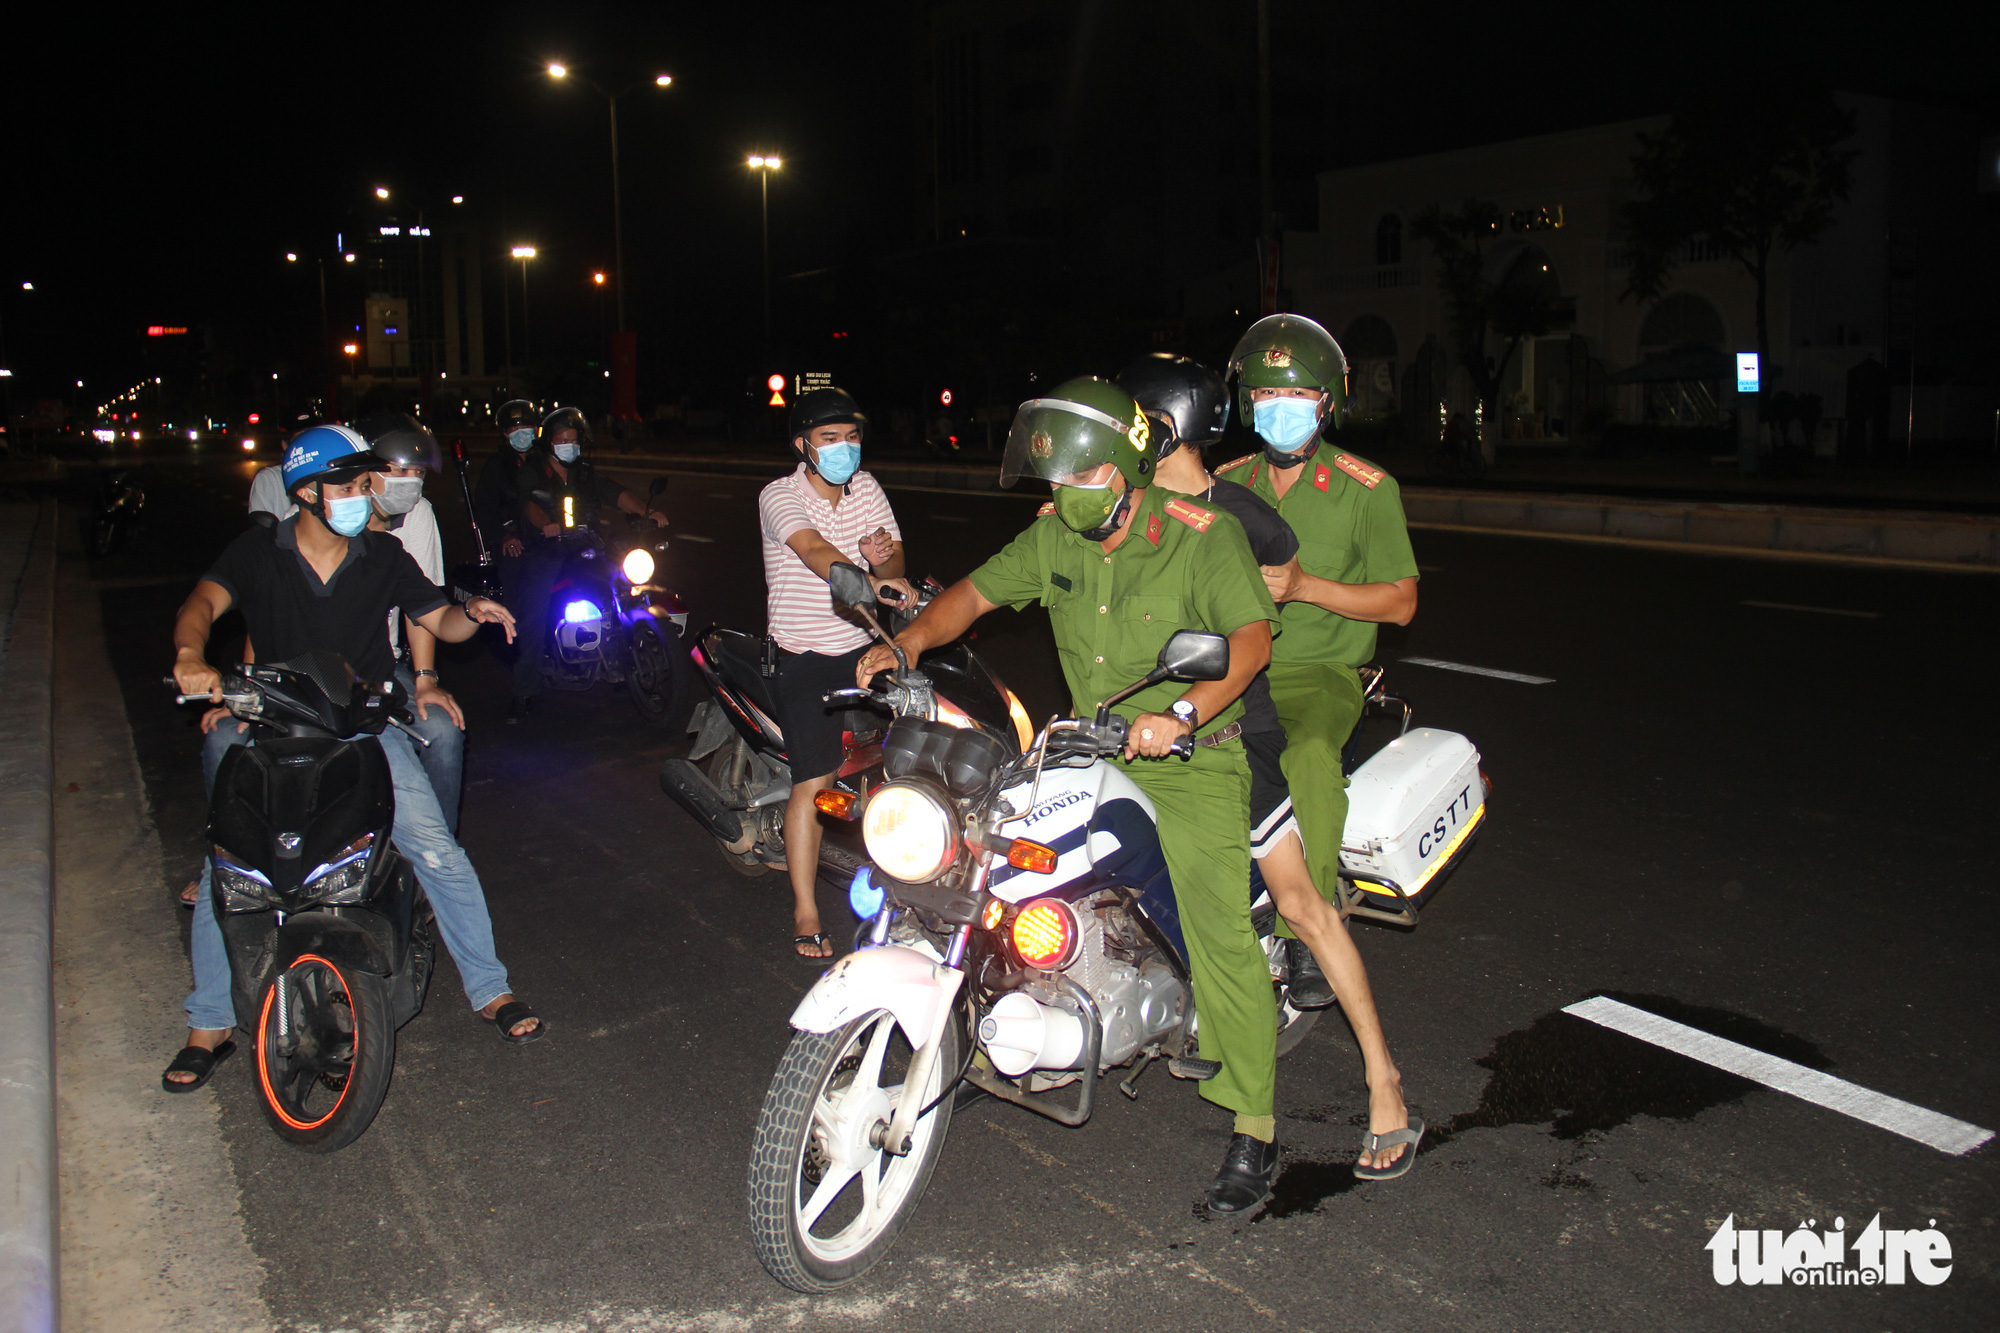 Police arrest a man for drug-related crime during their patrol in Da Nang, July 31, 2021. Photo: Truong Trung / Tuoi Tre